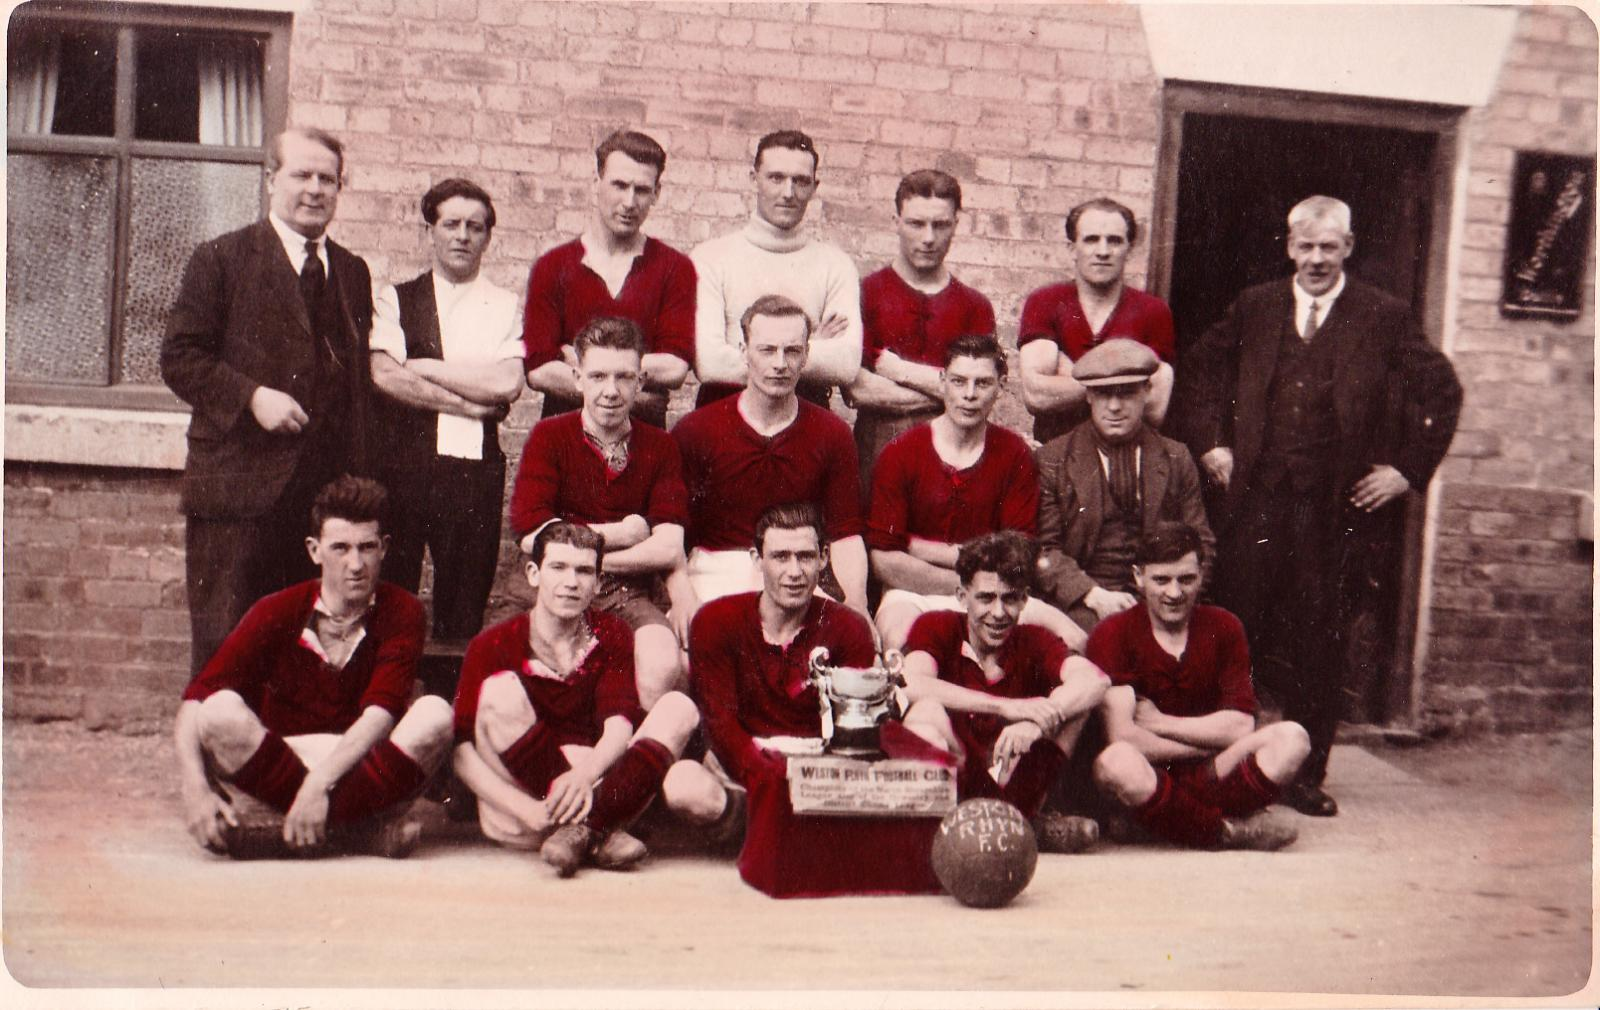 Weston Rhyn Football Club - Circa 1930